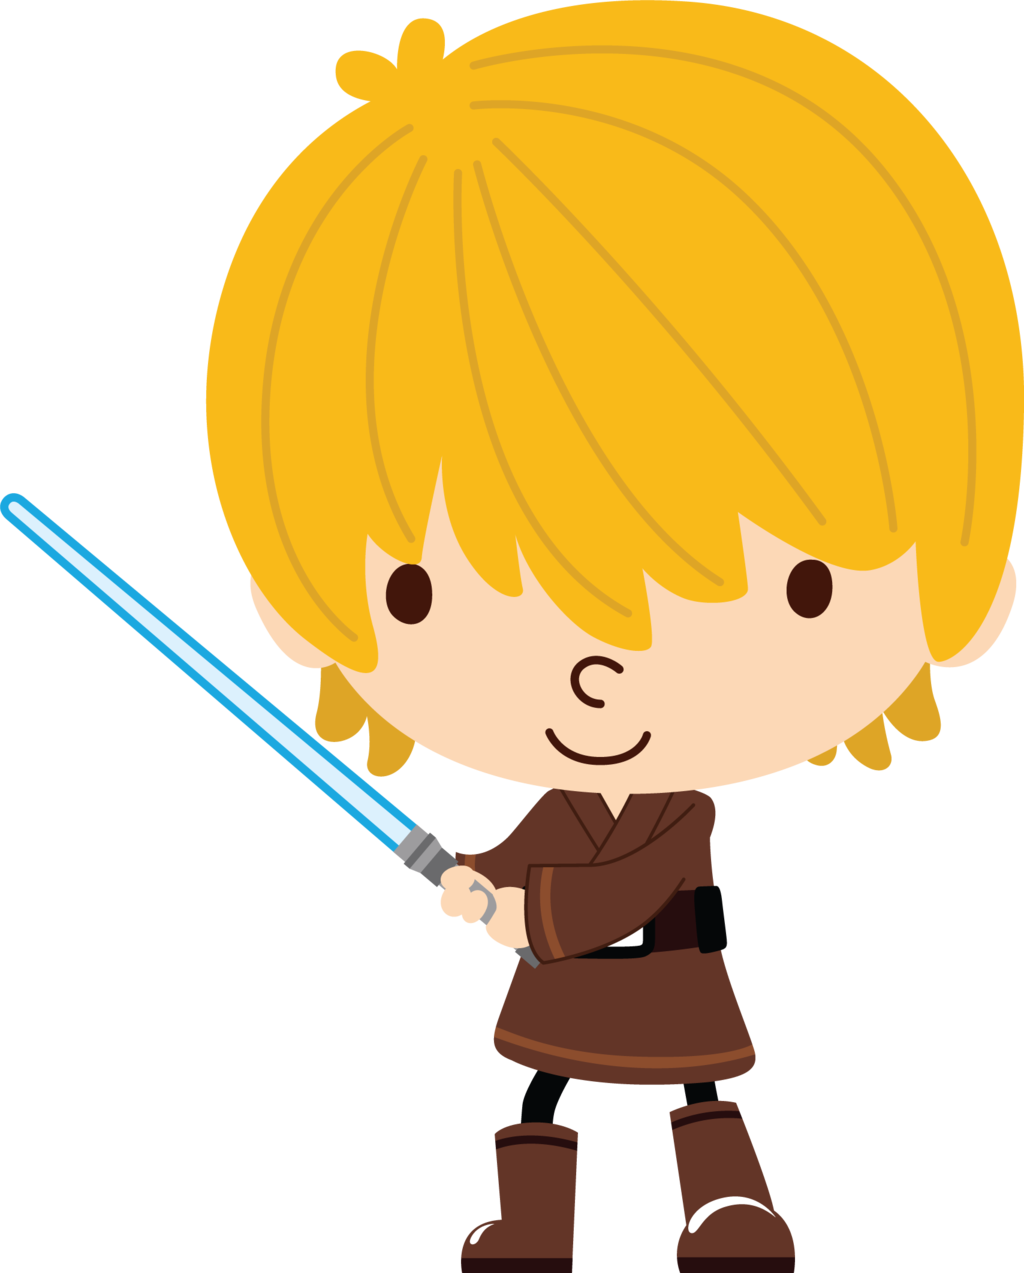 Free star wars chewie clipart clip library Pin by Игорь Павлов on ЧГК | Pinterest clip library